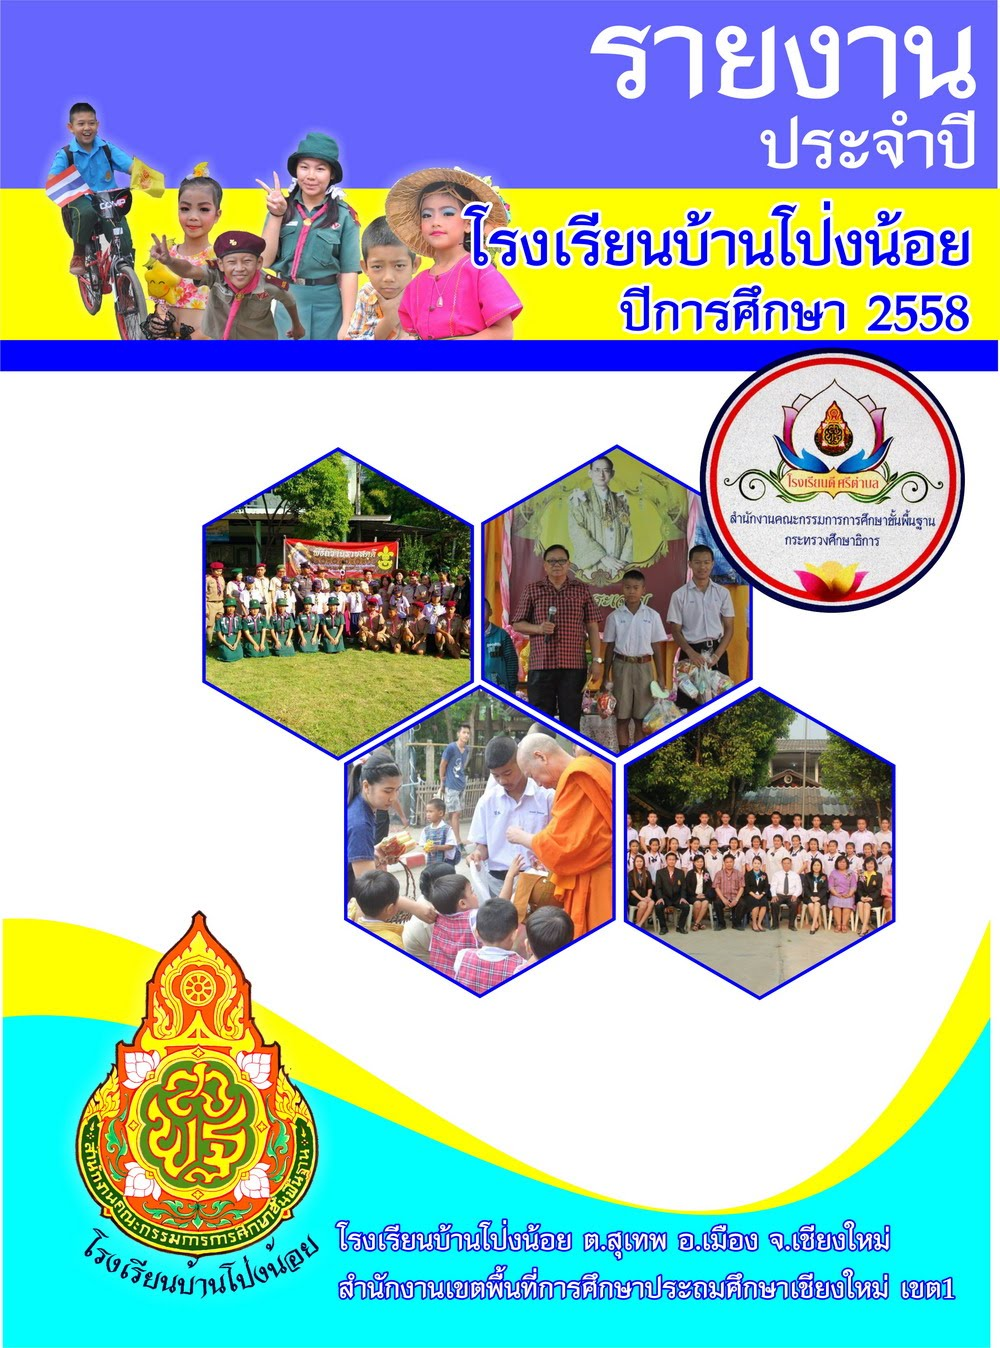 https://sites.google.com/a/bpnschool.ac.th/banpongnoi/khaw-prachasamphanth-rongreiyn-banpong-nxy/raynganpracapi2558raynganrongreiynbanpongnxy